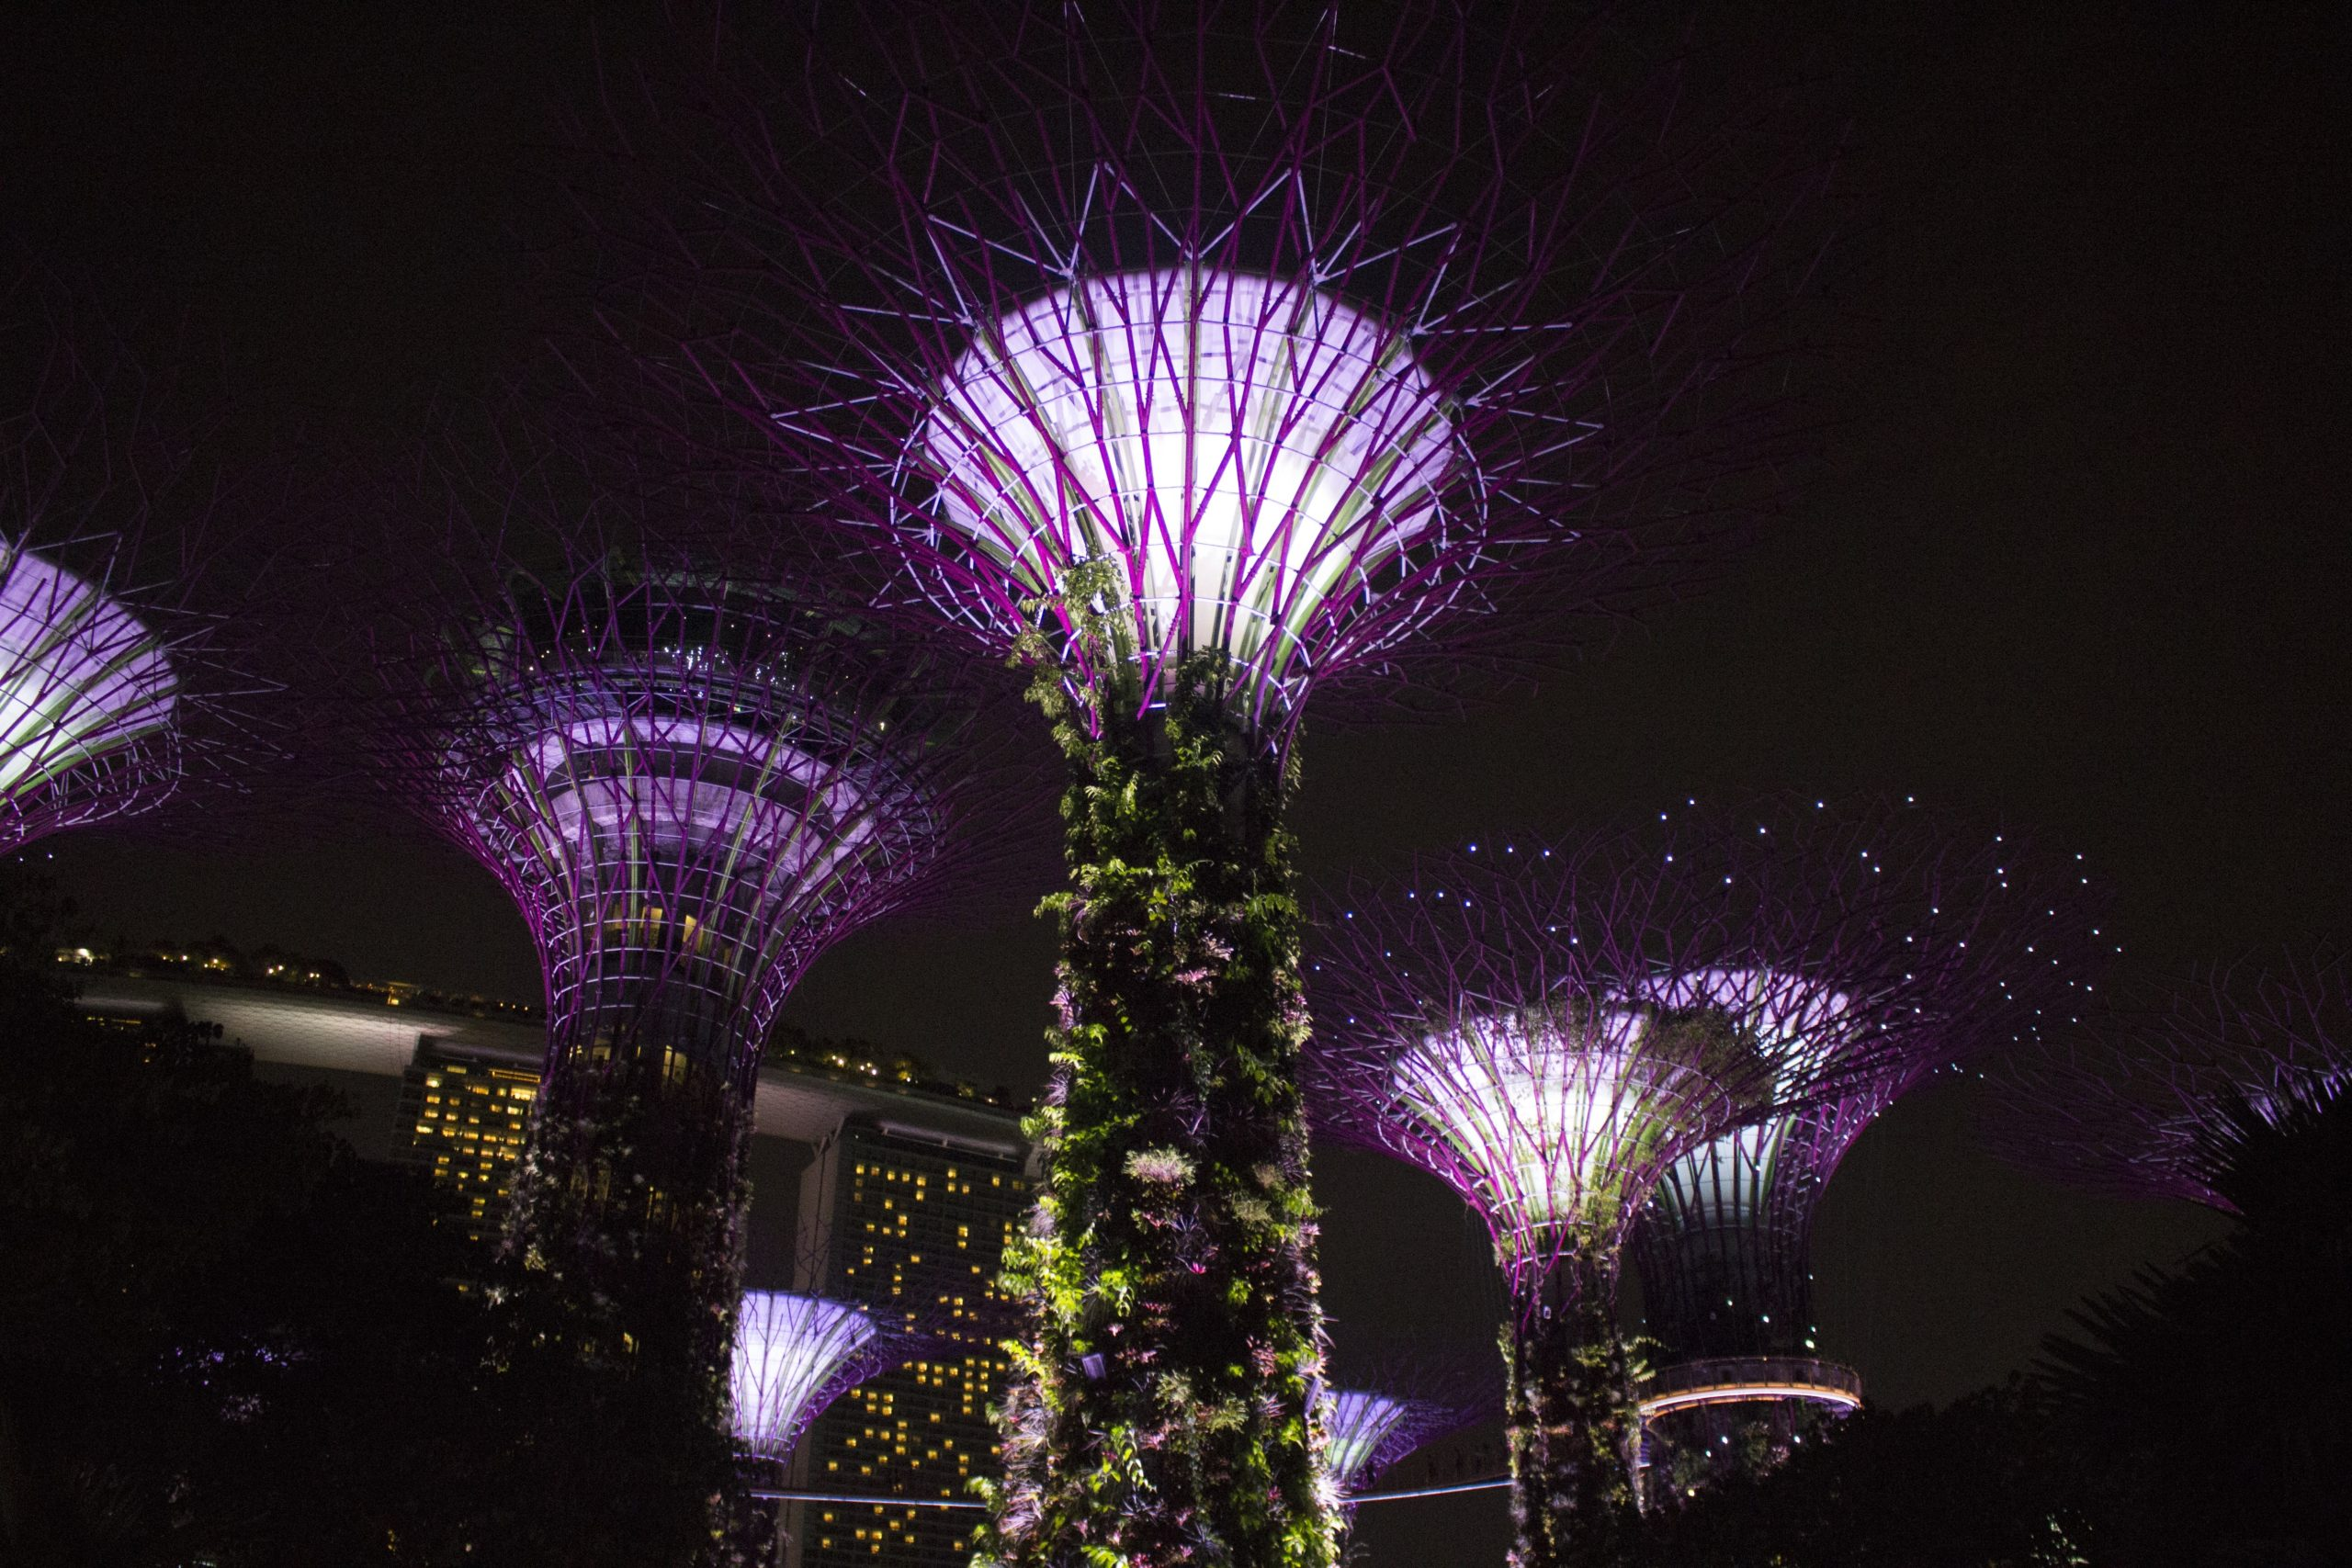 Gardens by the Bay and Parkroyal Hotel (Singapore) from Chris Woods's book